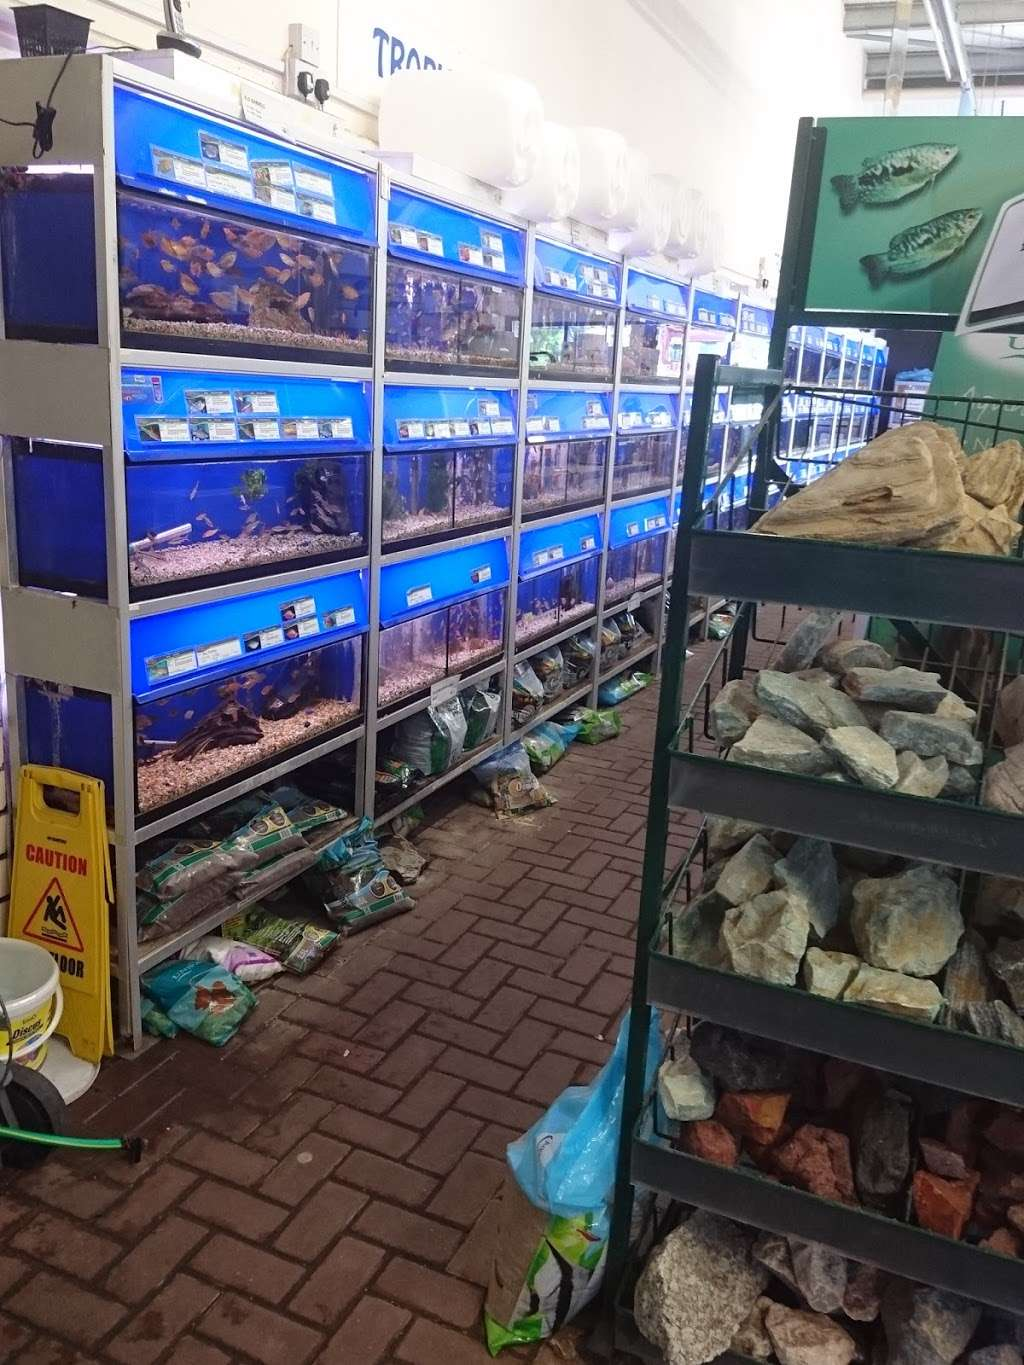 Maidenhead Aquatics Crawley - store  | Photo 1 of 3 | Address: Squires garden centre, Horsham Rd, Crawley RH11 8PL, UK | Phone: 01293 538256